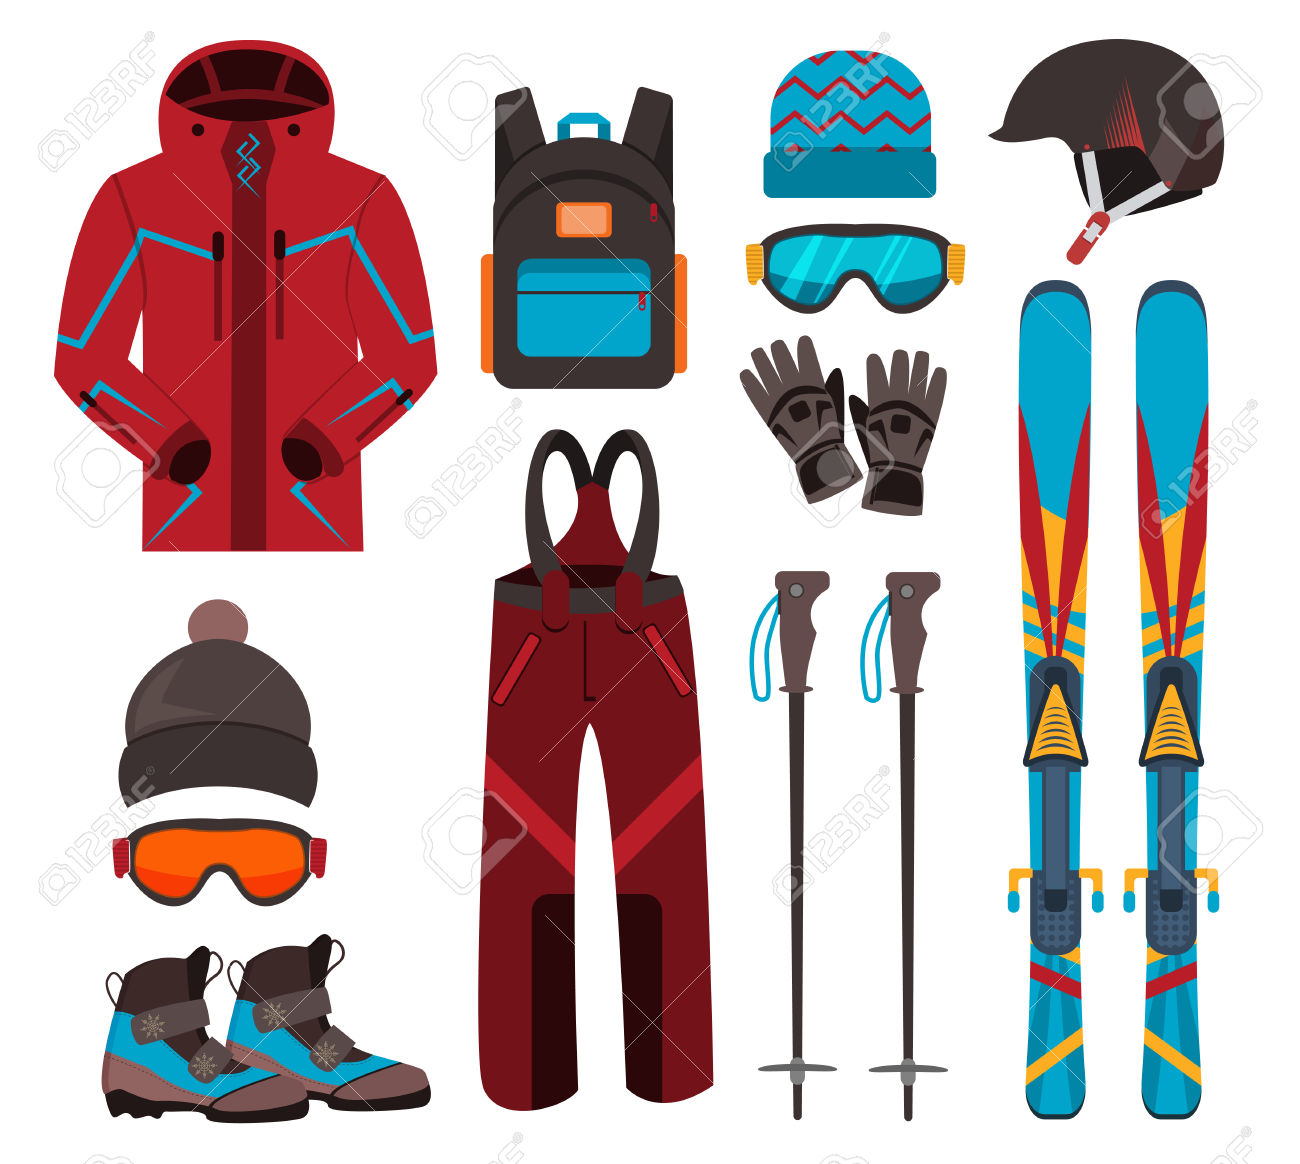 winter equipment clipart